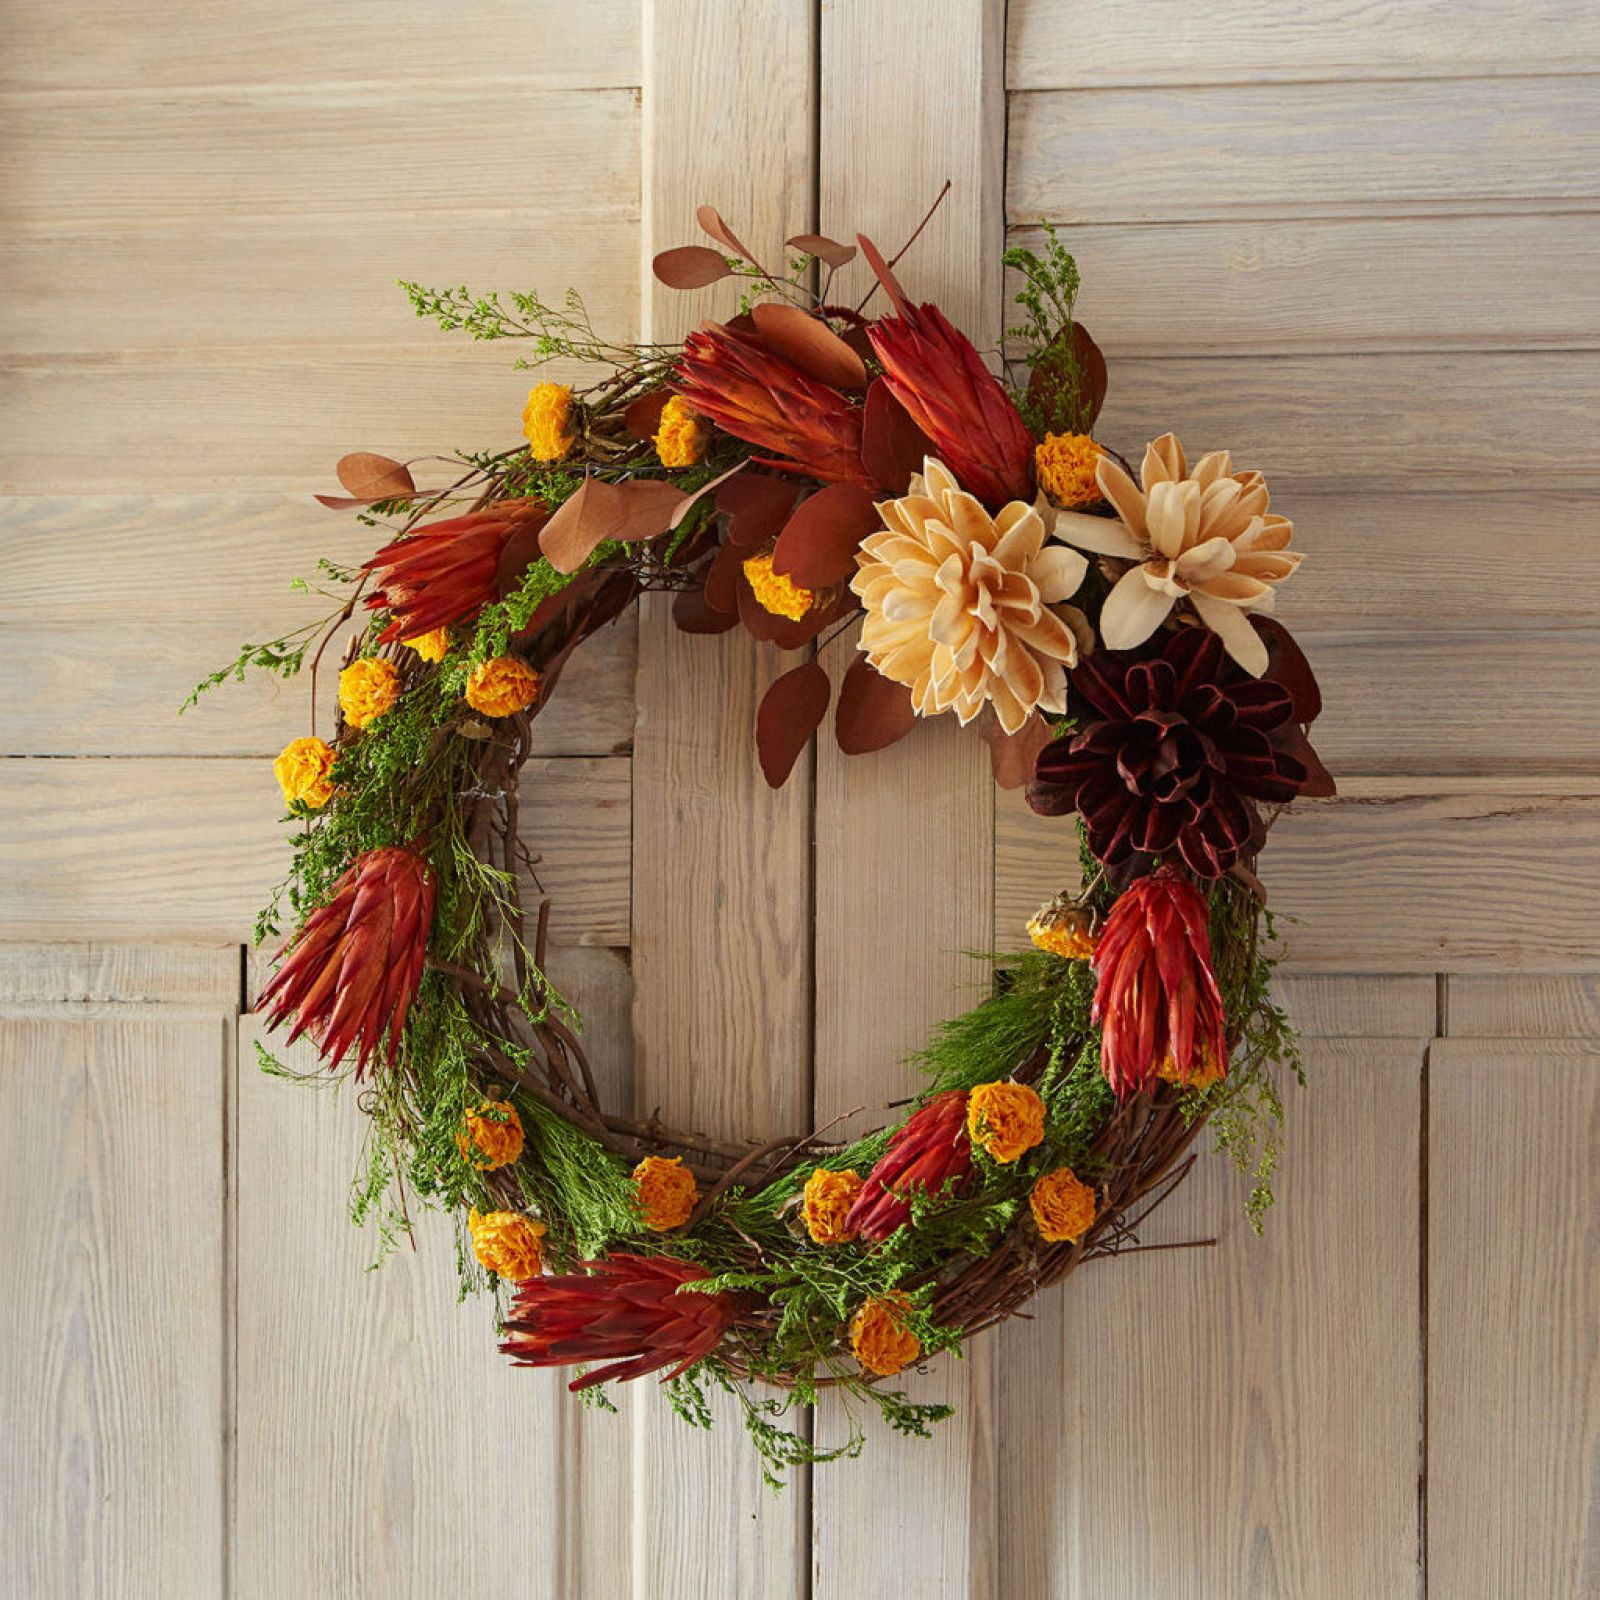 Dried Floral Grapevine Wreath